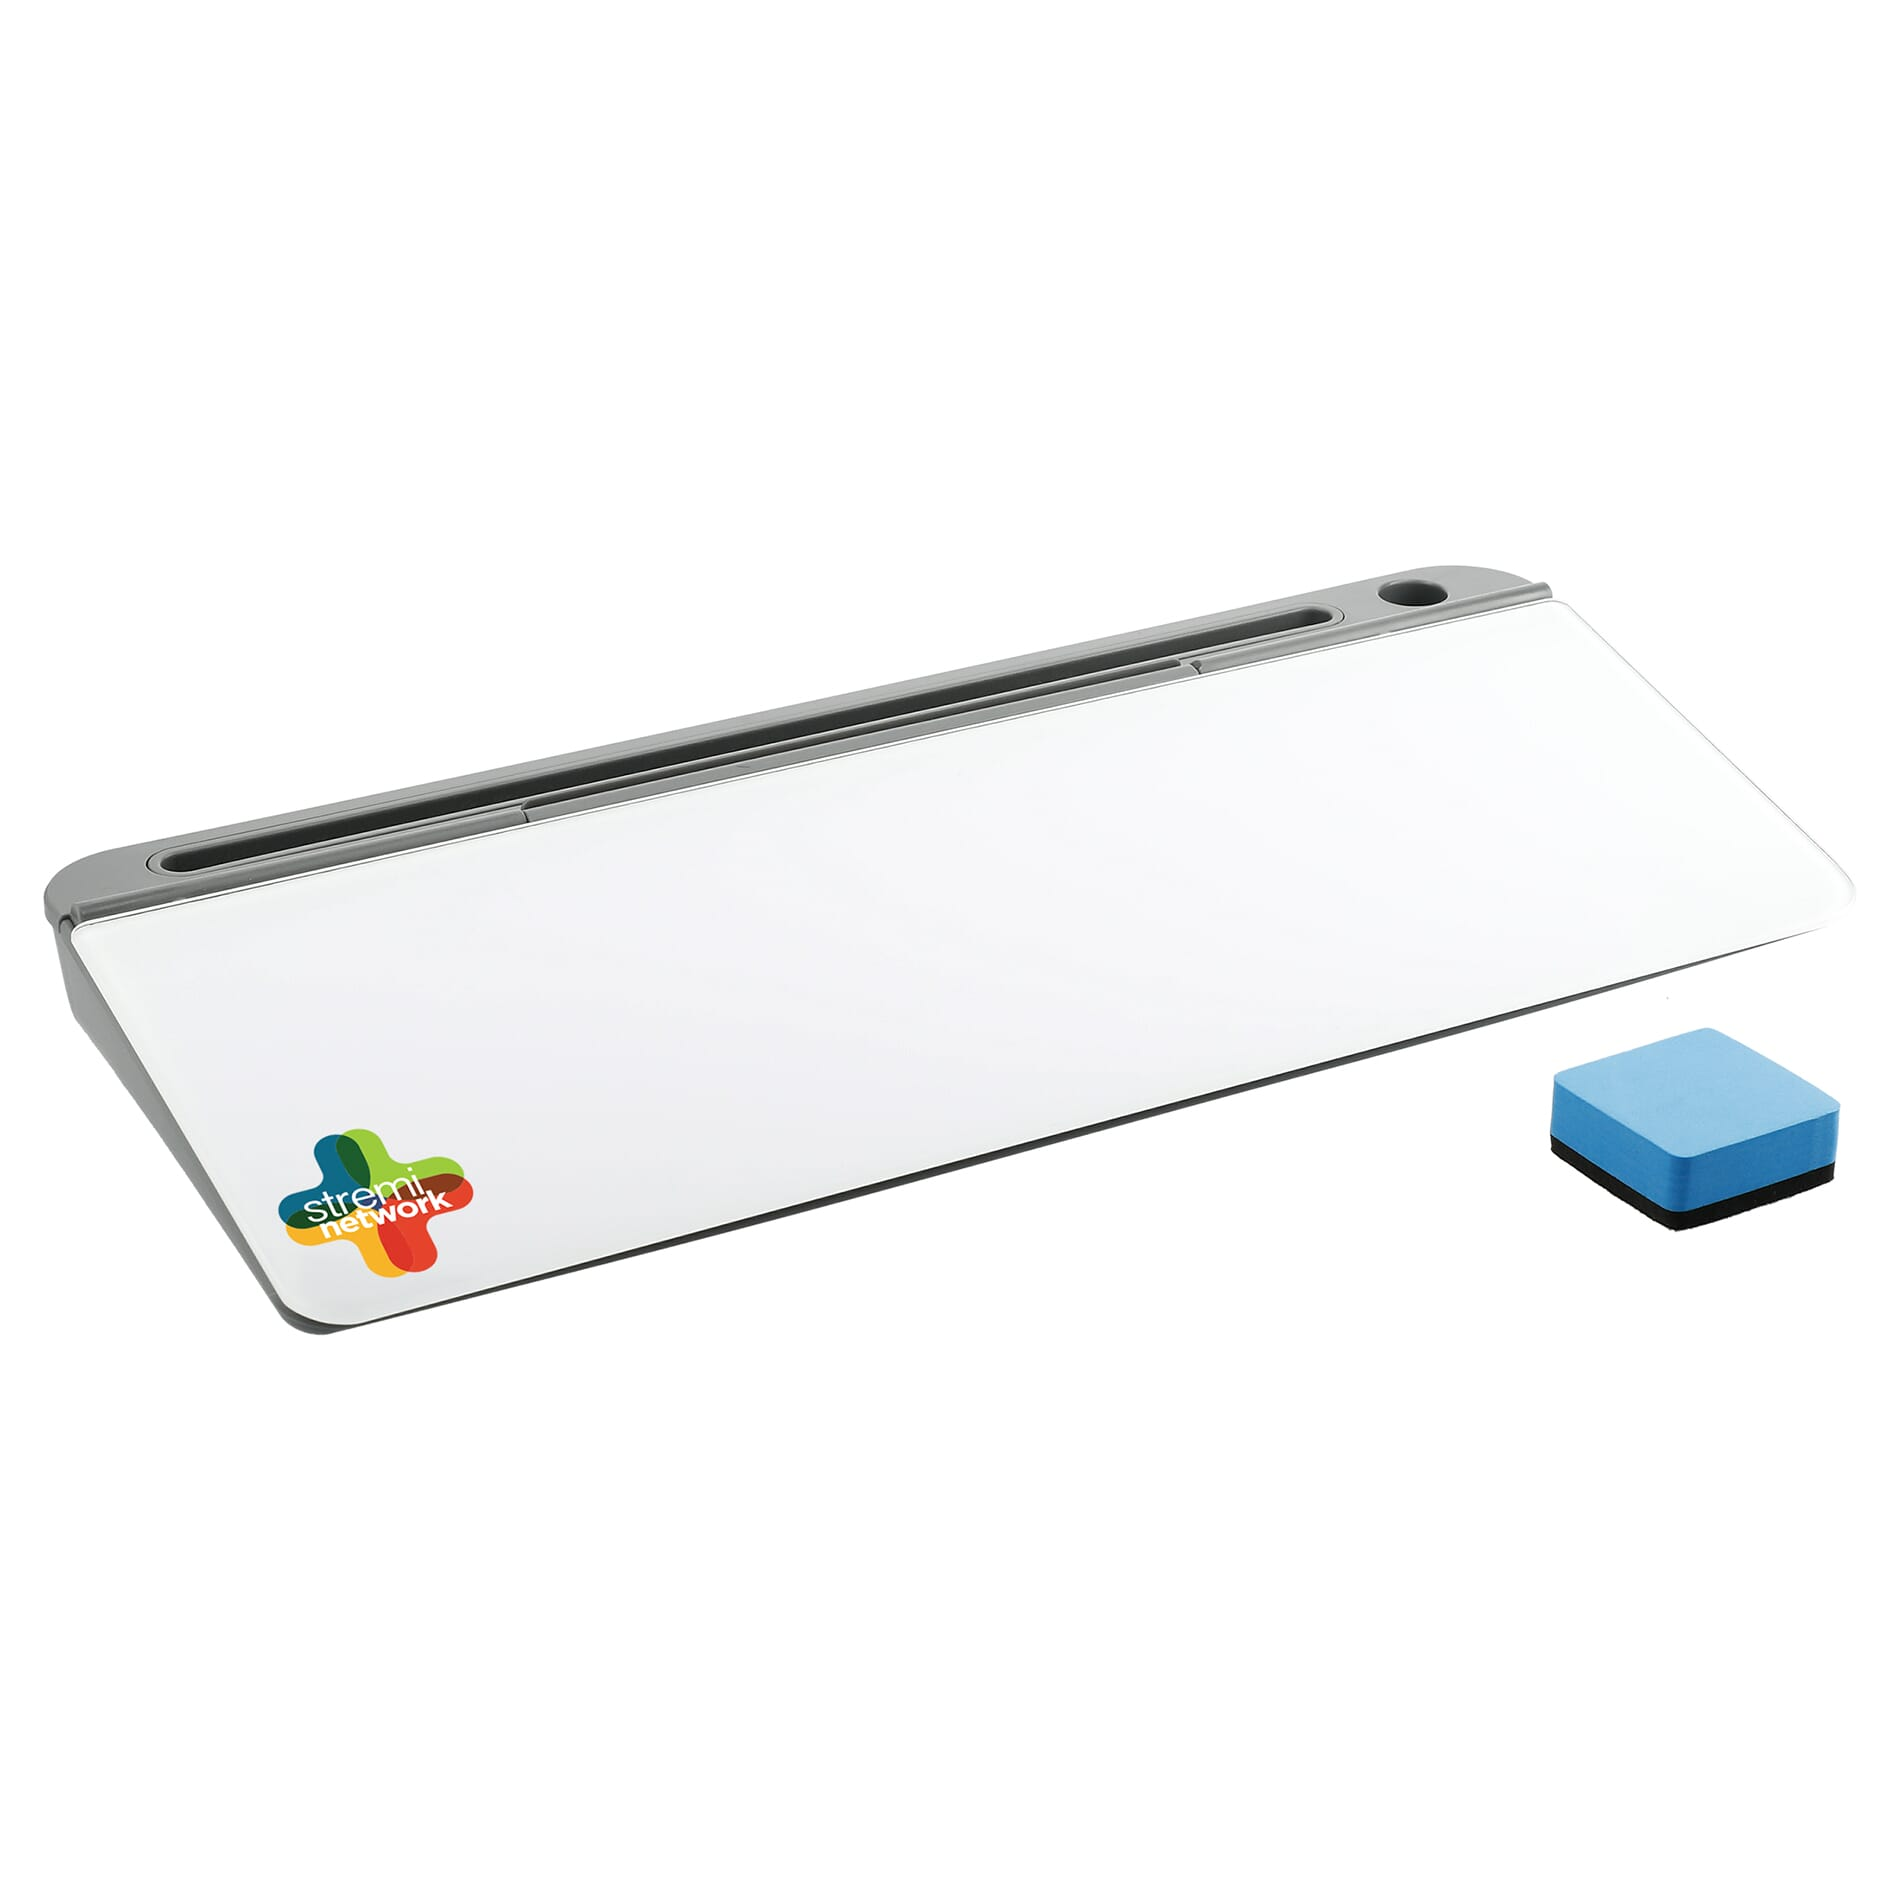 Mini whiteboard set for desks